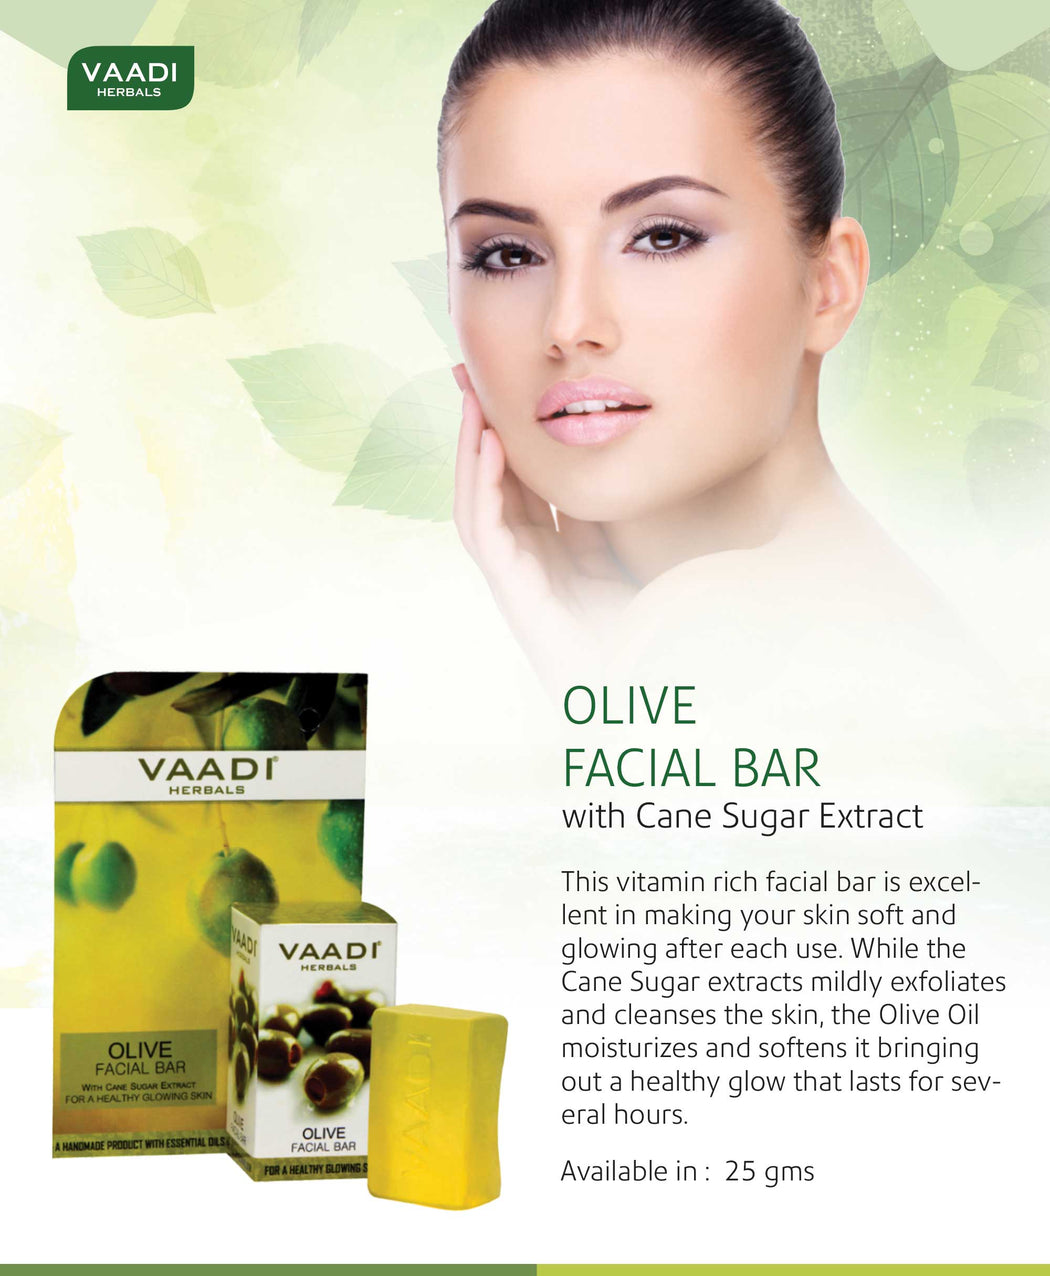 Pack of 4 Olive Facial Bars with Cane Sugar Extract (25 gms x 4)